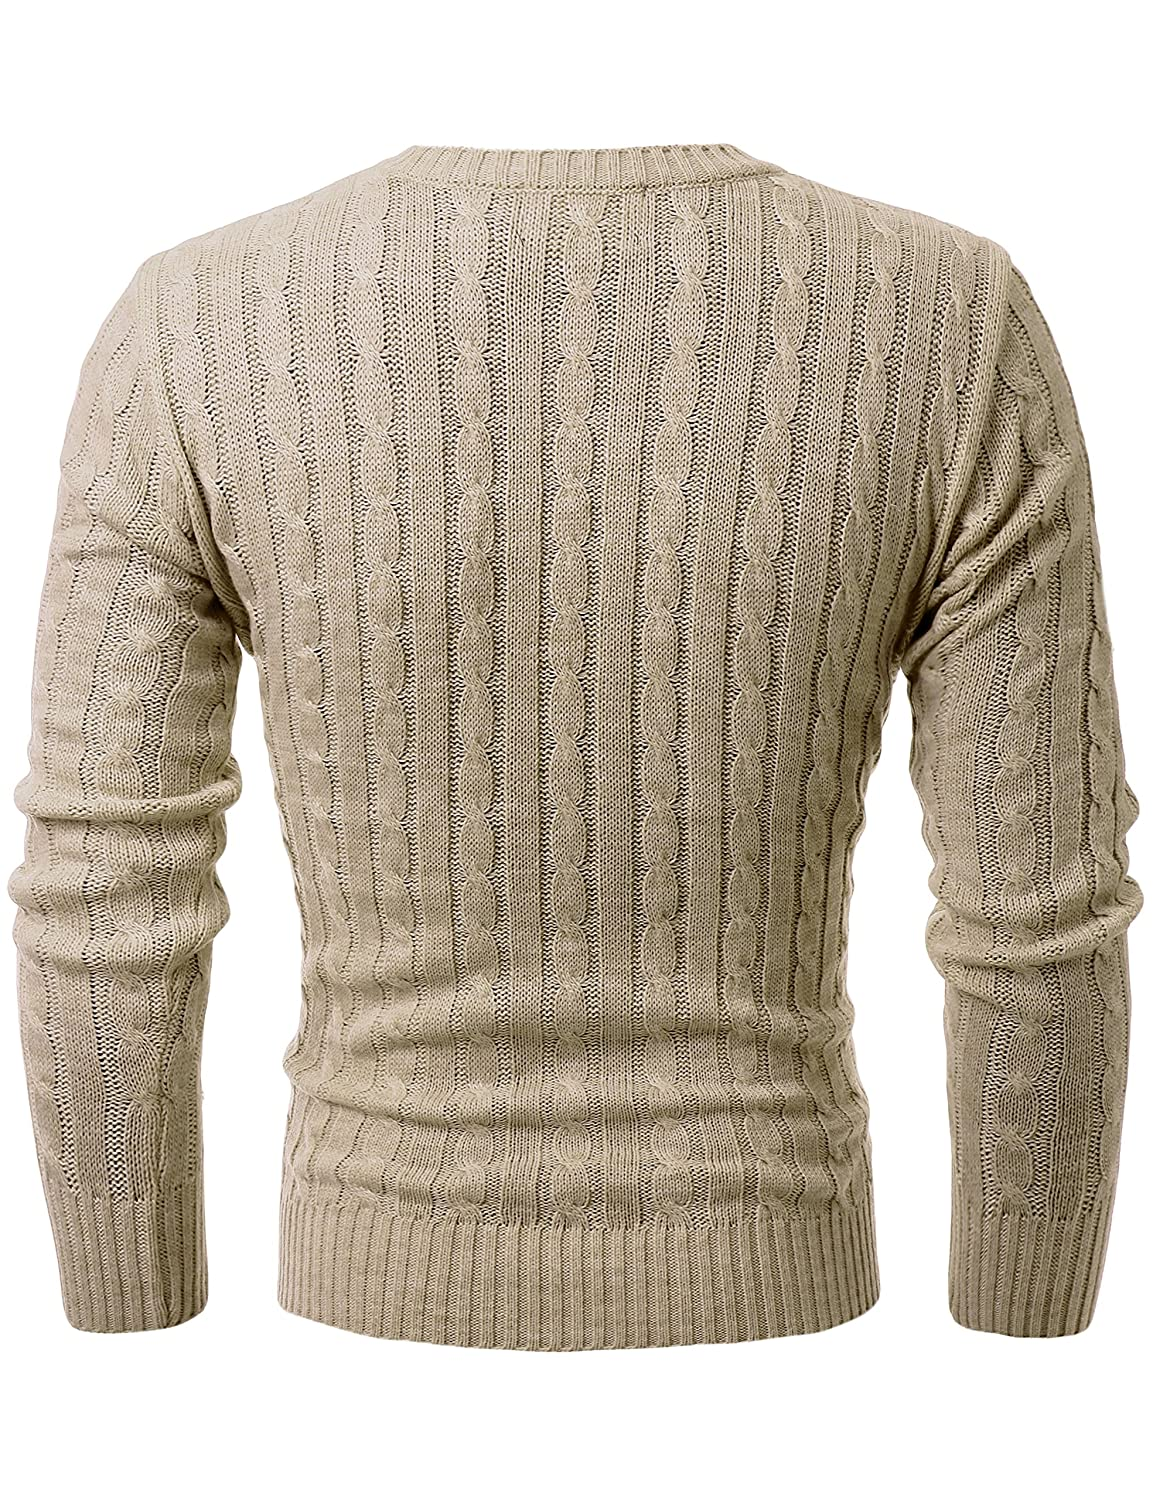 0ca8584174d1f GIVON Mens Slim Fit Cable Knit Long Sleeve Crew-Neck Pullover Sweater at  Amazon Men s Clothing store